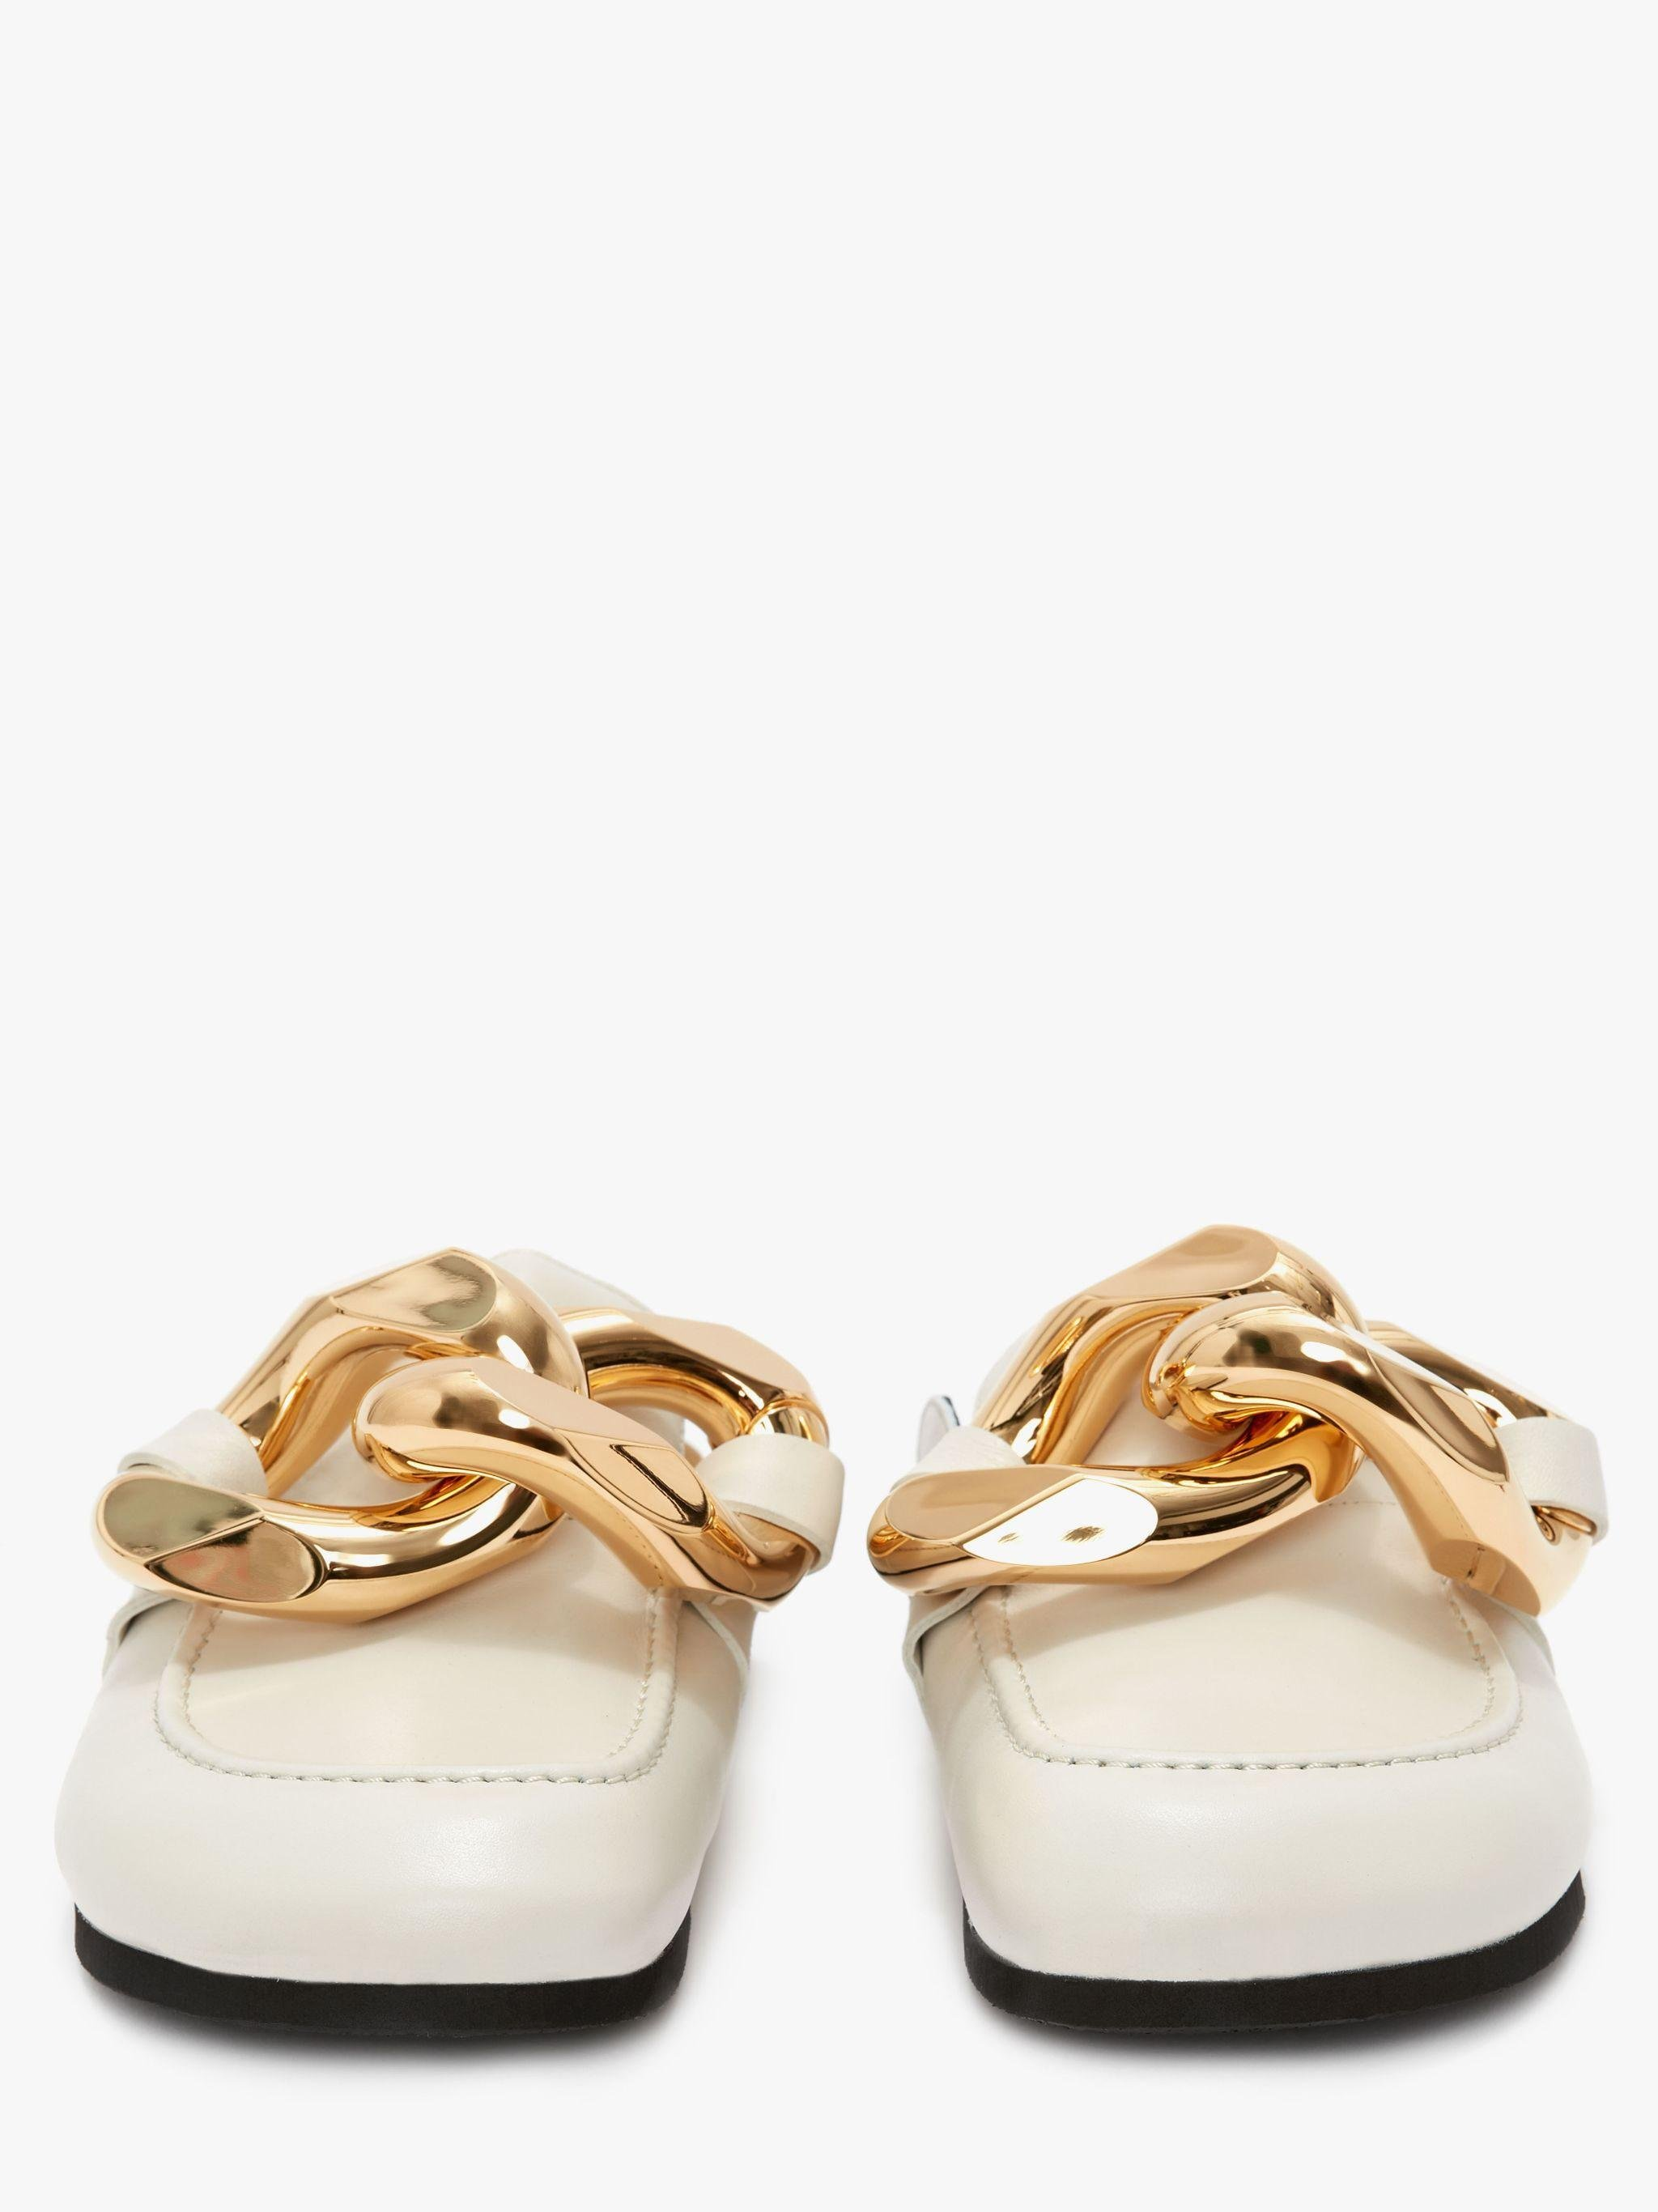 WOMEN'S CHAIN LOAFER MULES 2